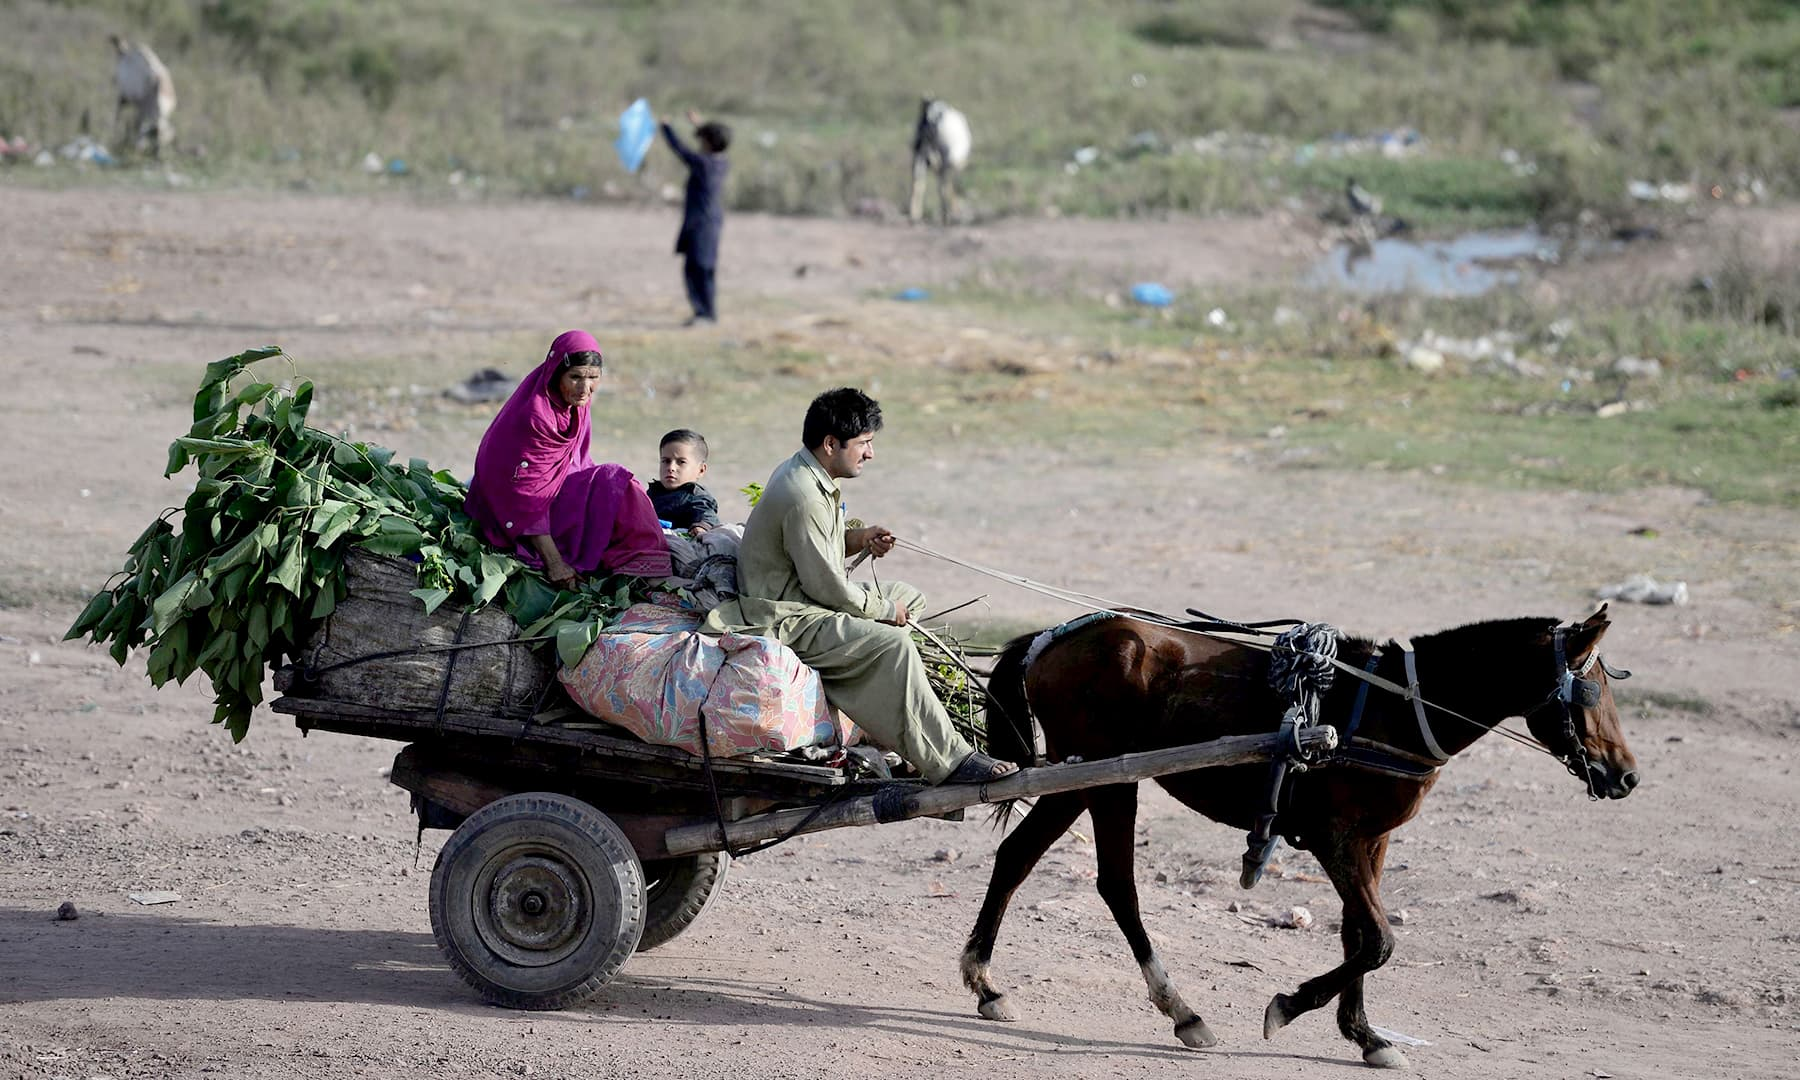 An Afghan refugee family rides on a horse cart at a refugee camp located just outside Islamabad. — AFP